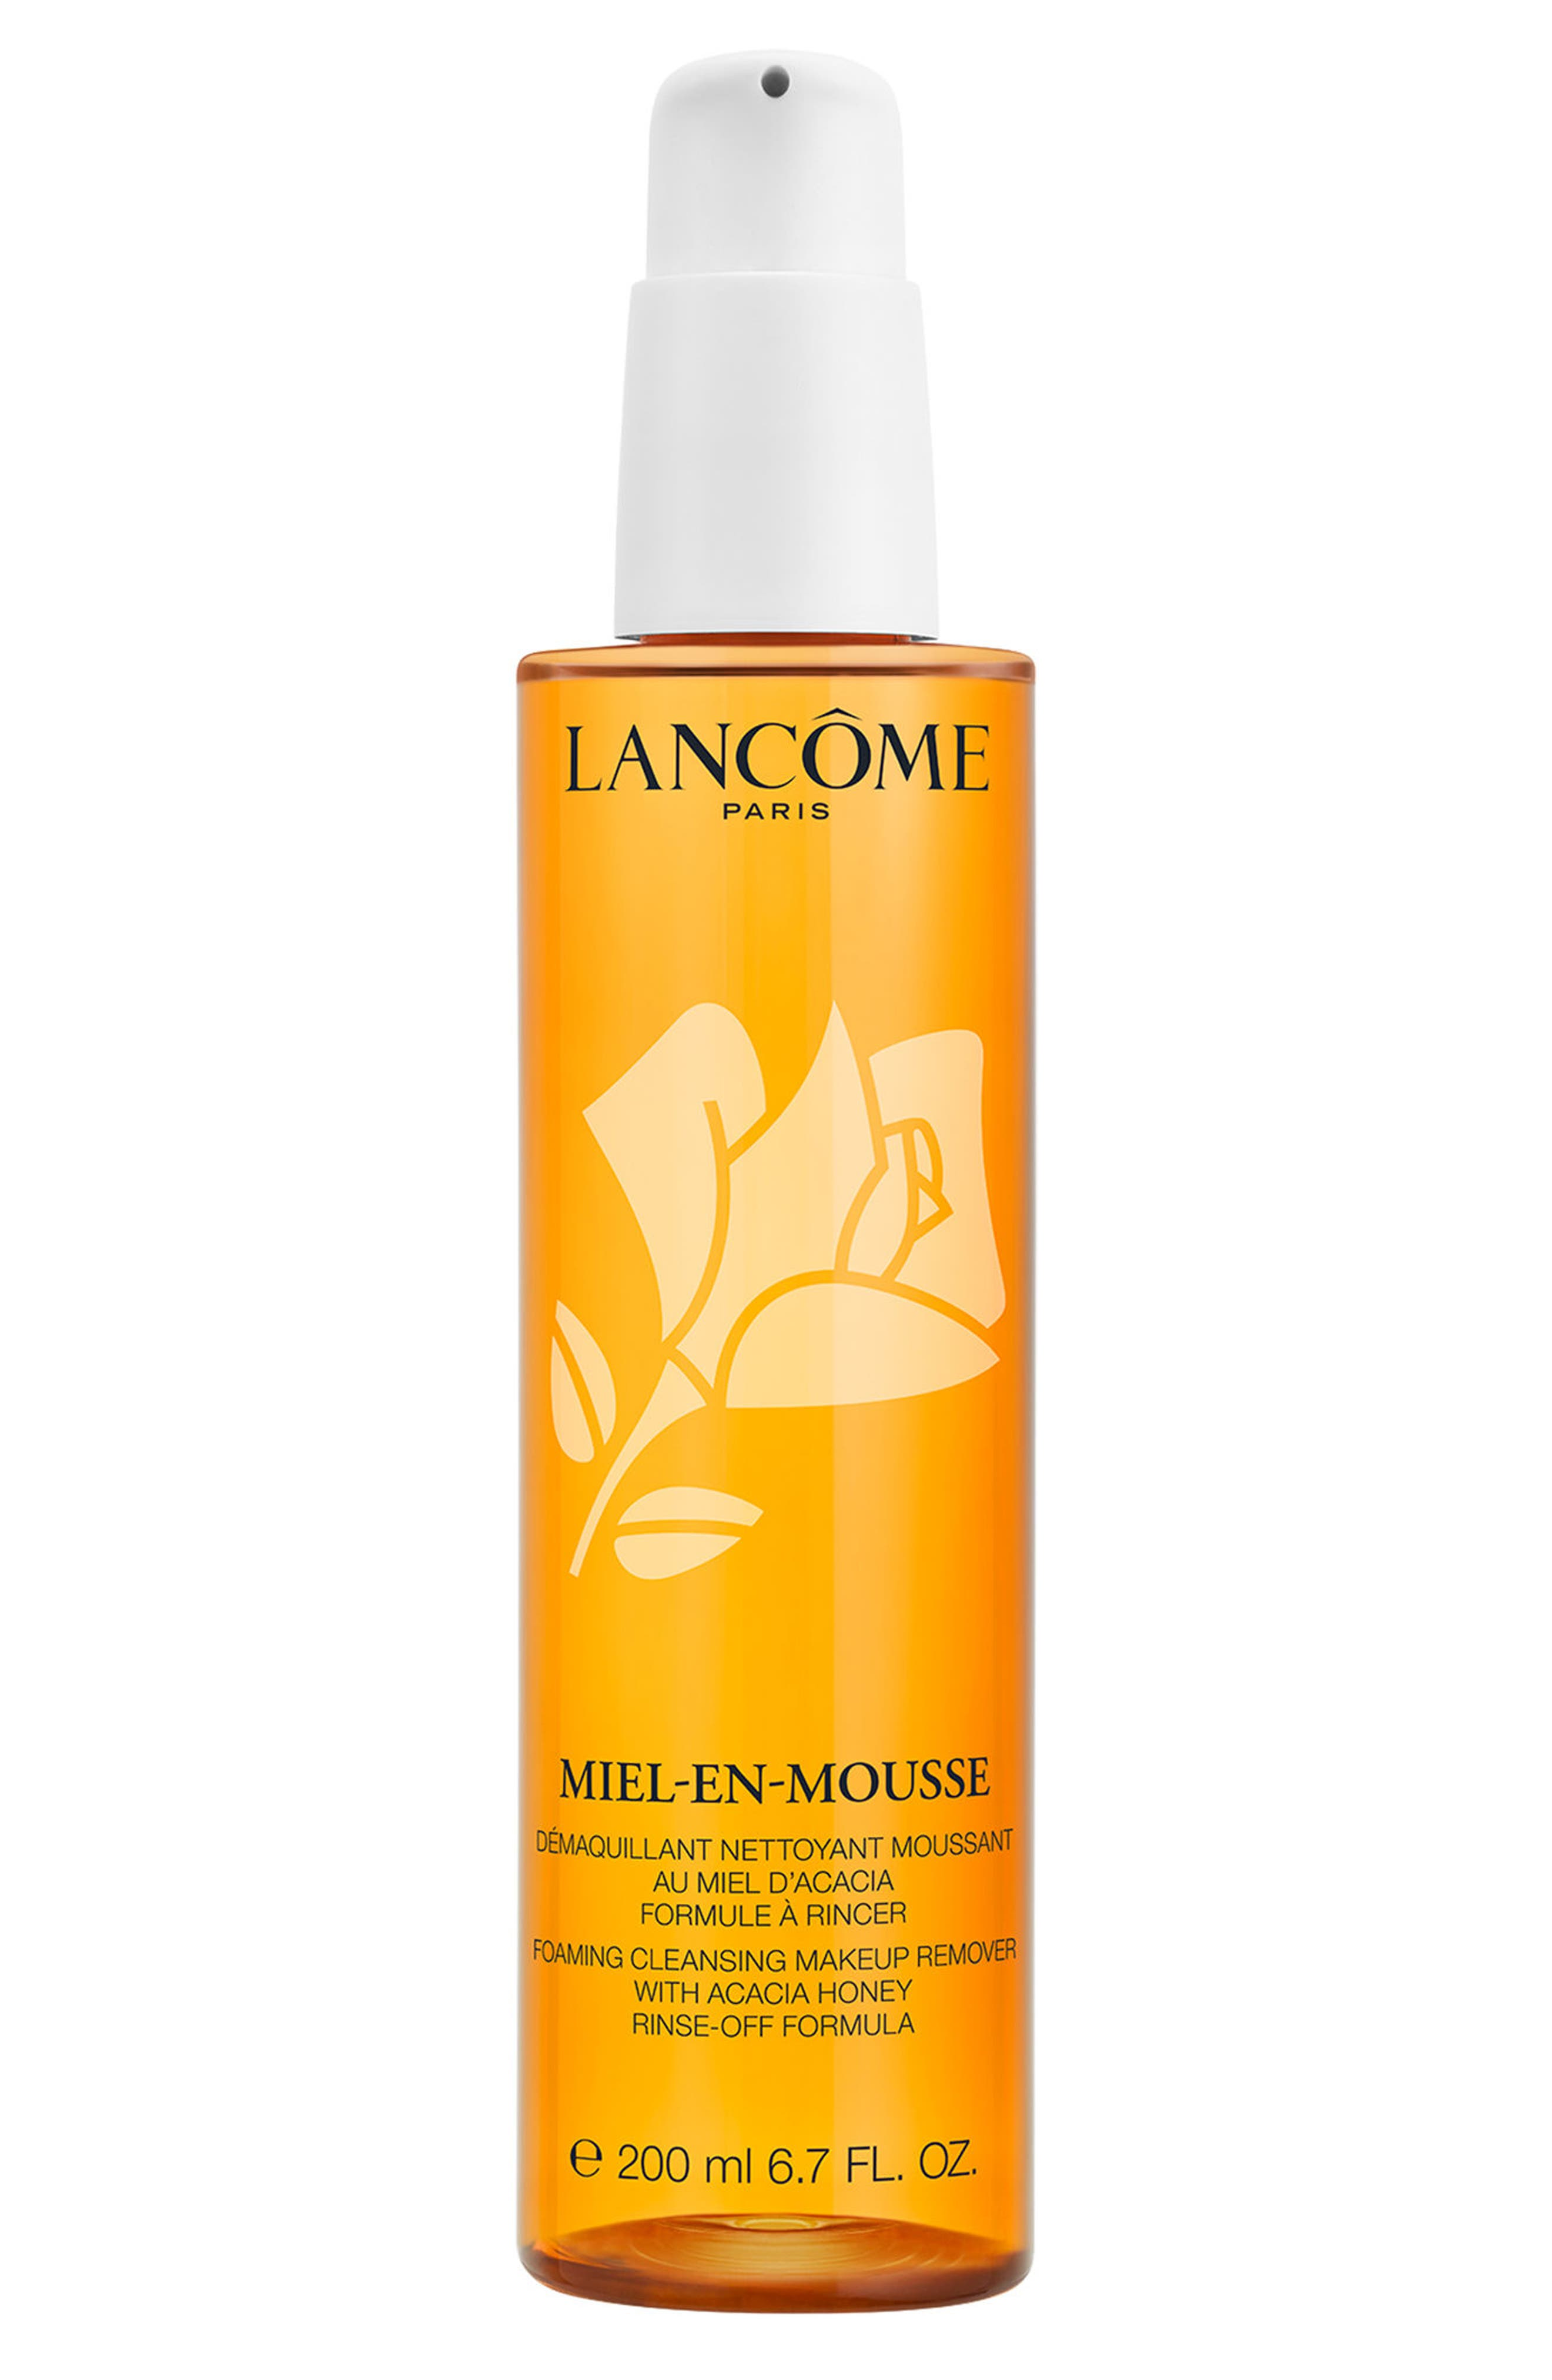 Lancôme Miel-en-Mousse Foaming Face Cleanser & Makeup Remover